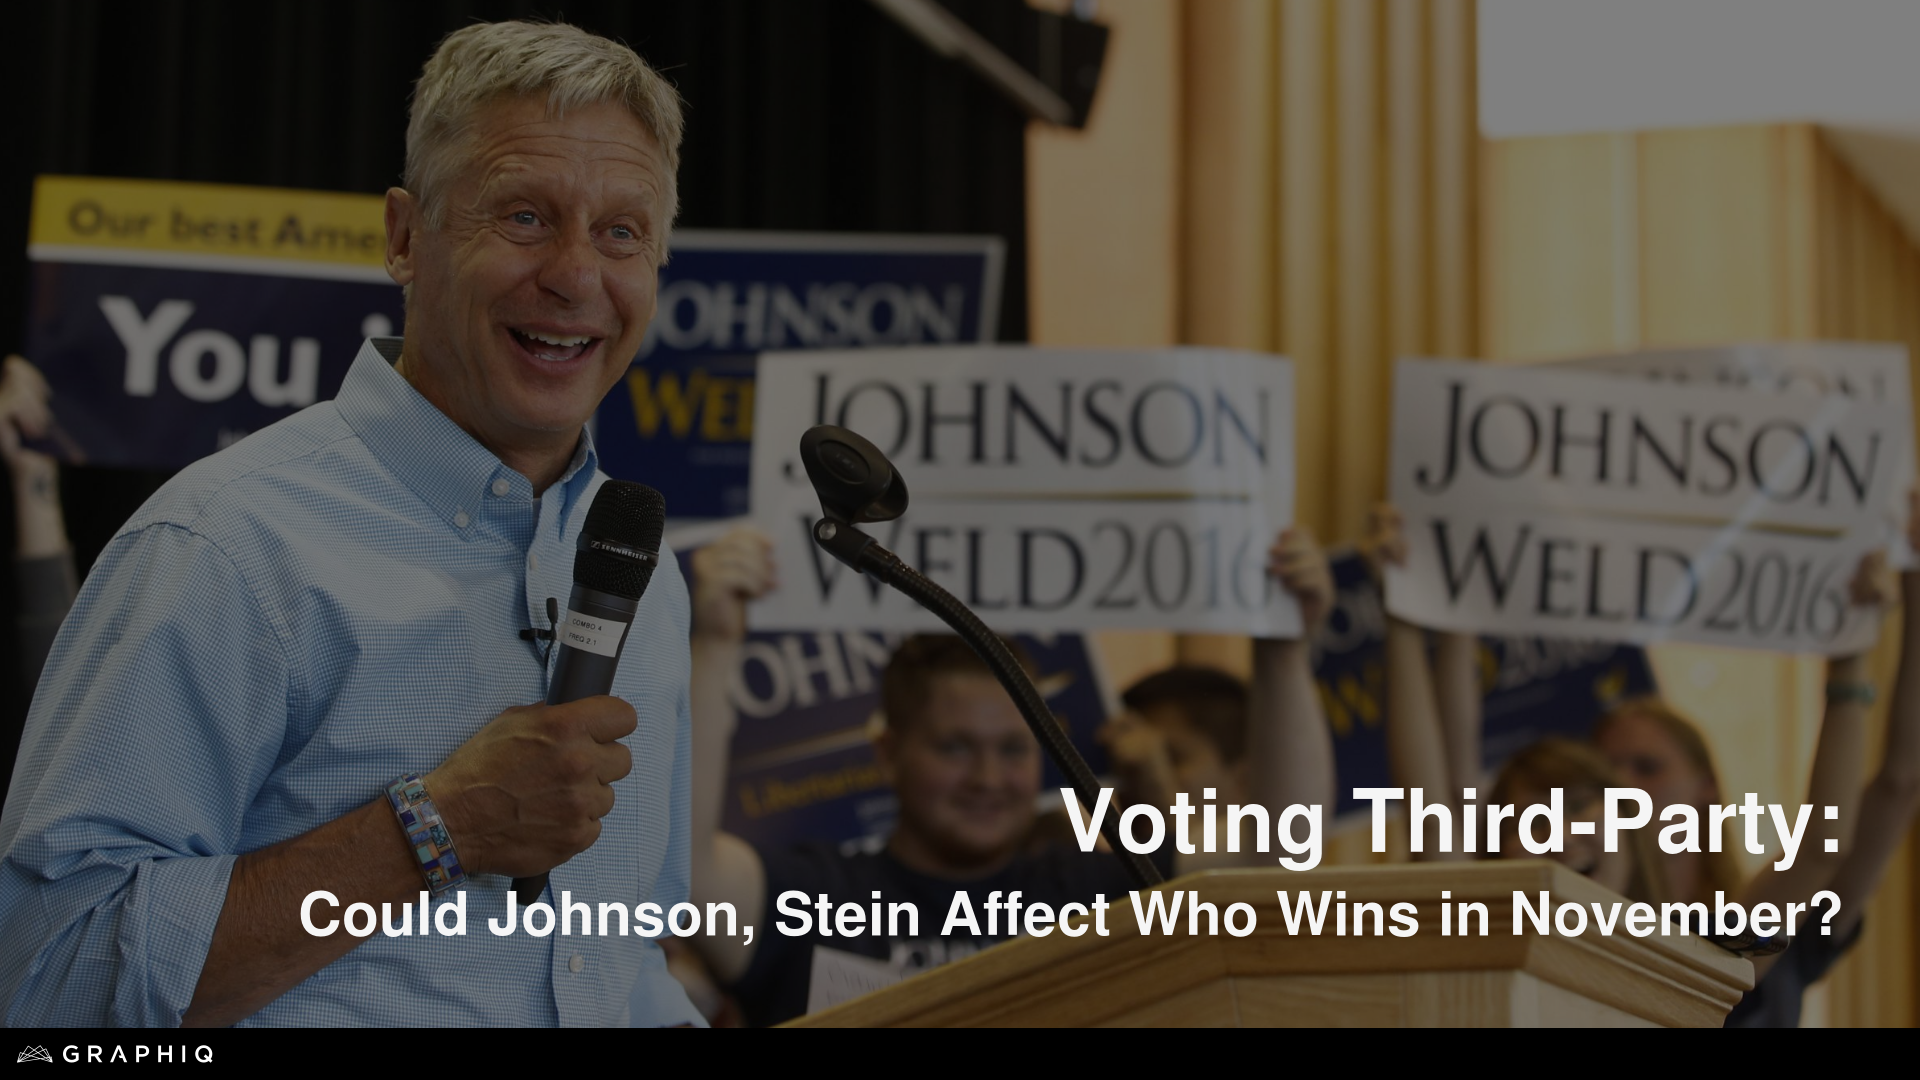 Voting Third-Party: Could Johnson, Stein Affect Who Wins in November?